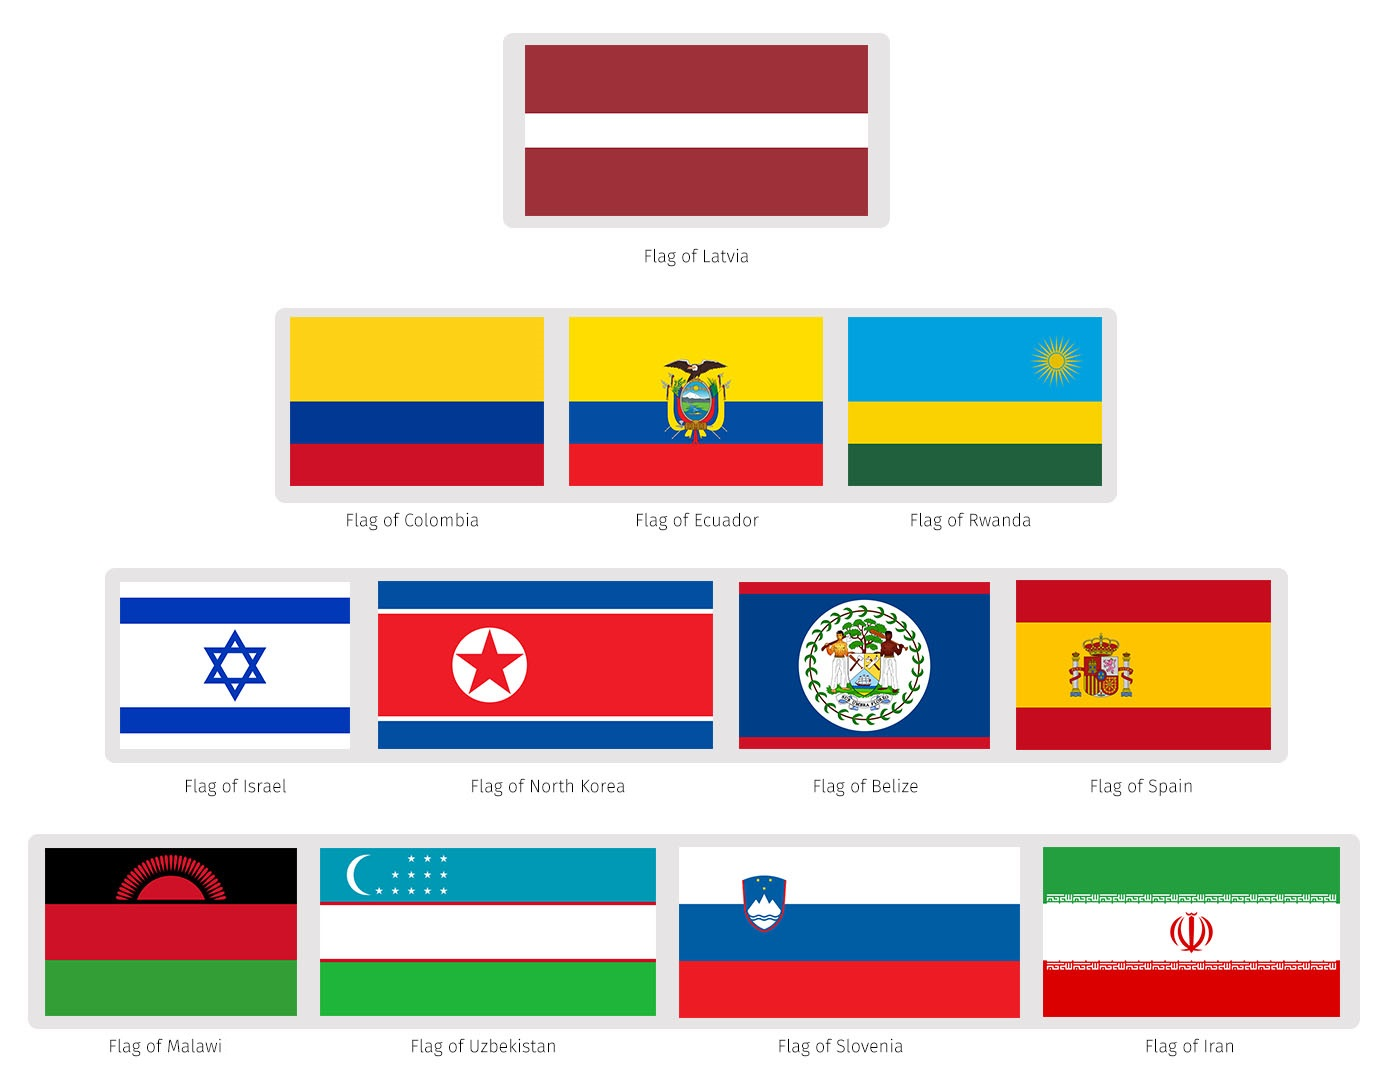 en46-flags-of-the-world_20